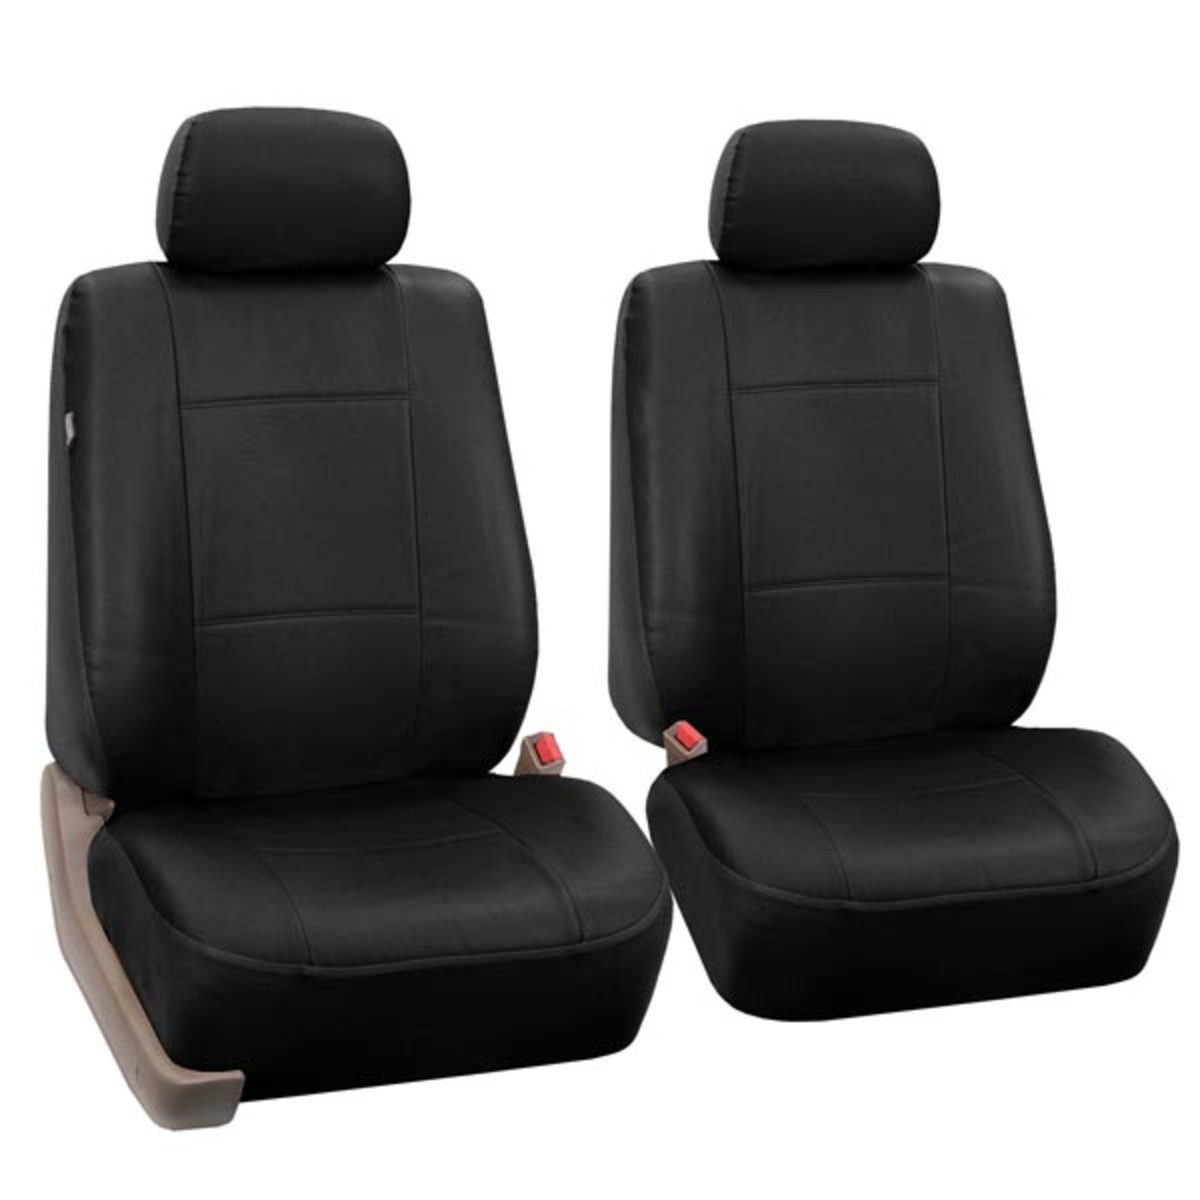 88-PU002102_black seat cover